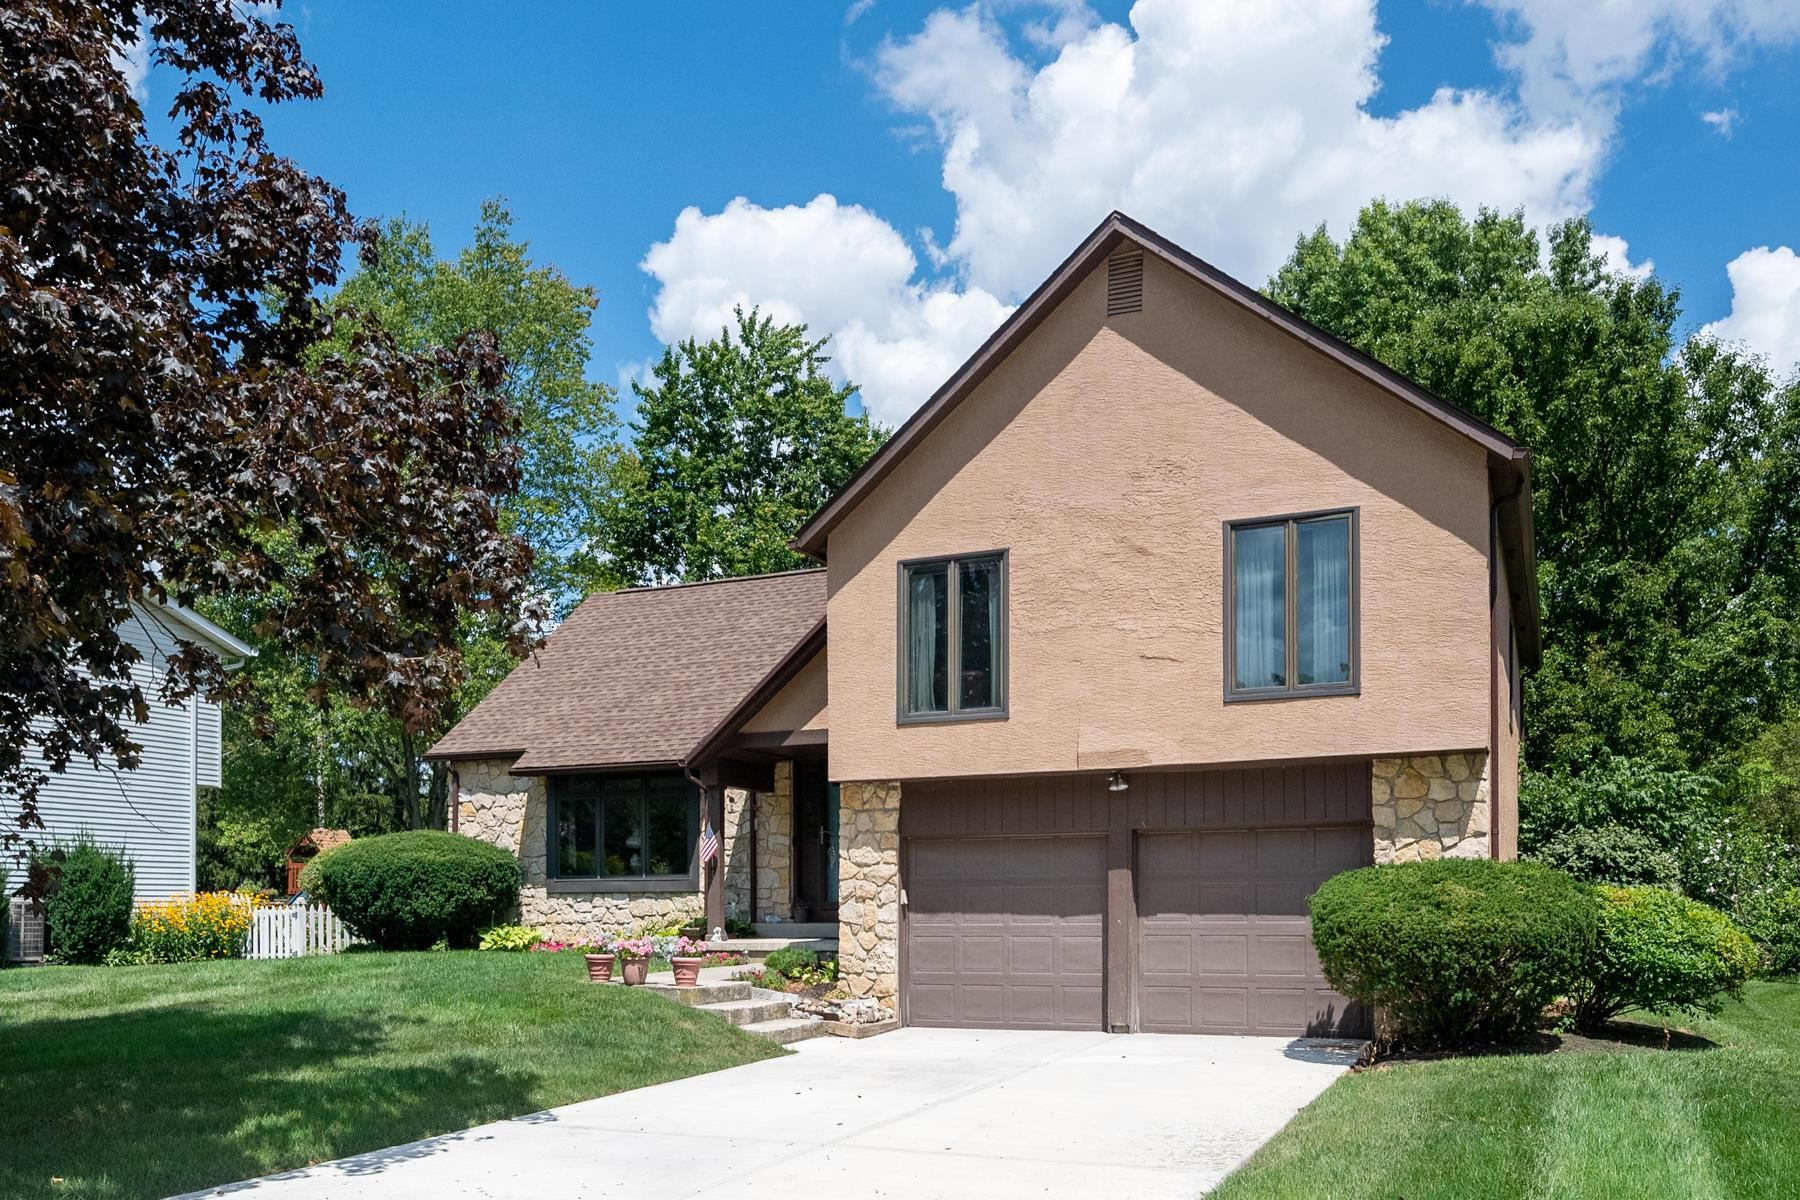 Photo for 54 Yorkshire Road, Delaware, OH 43015 (MLS # 221029586)